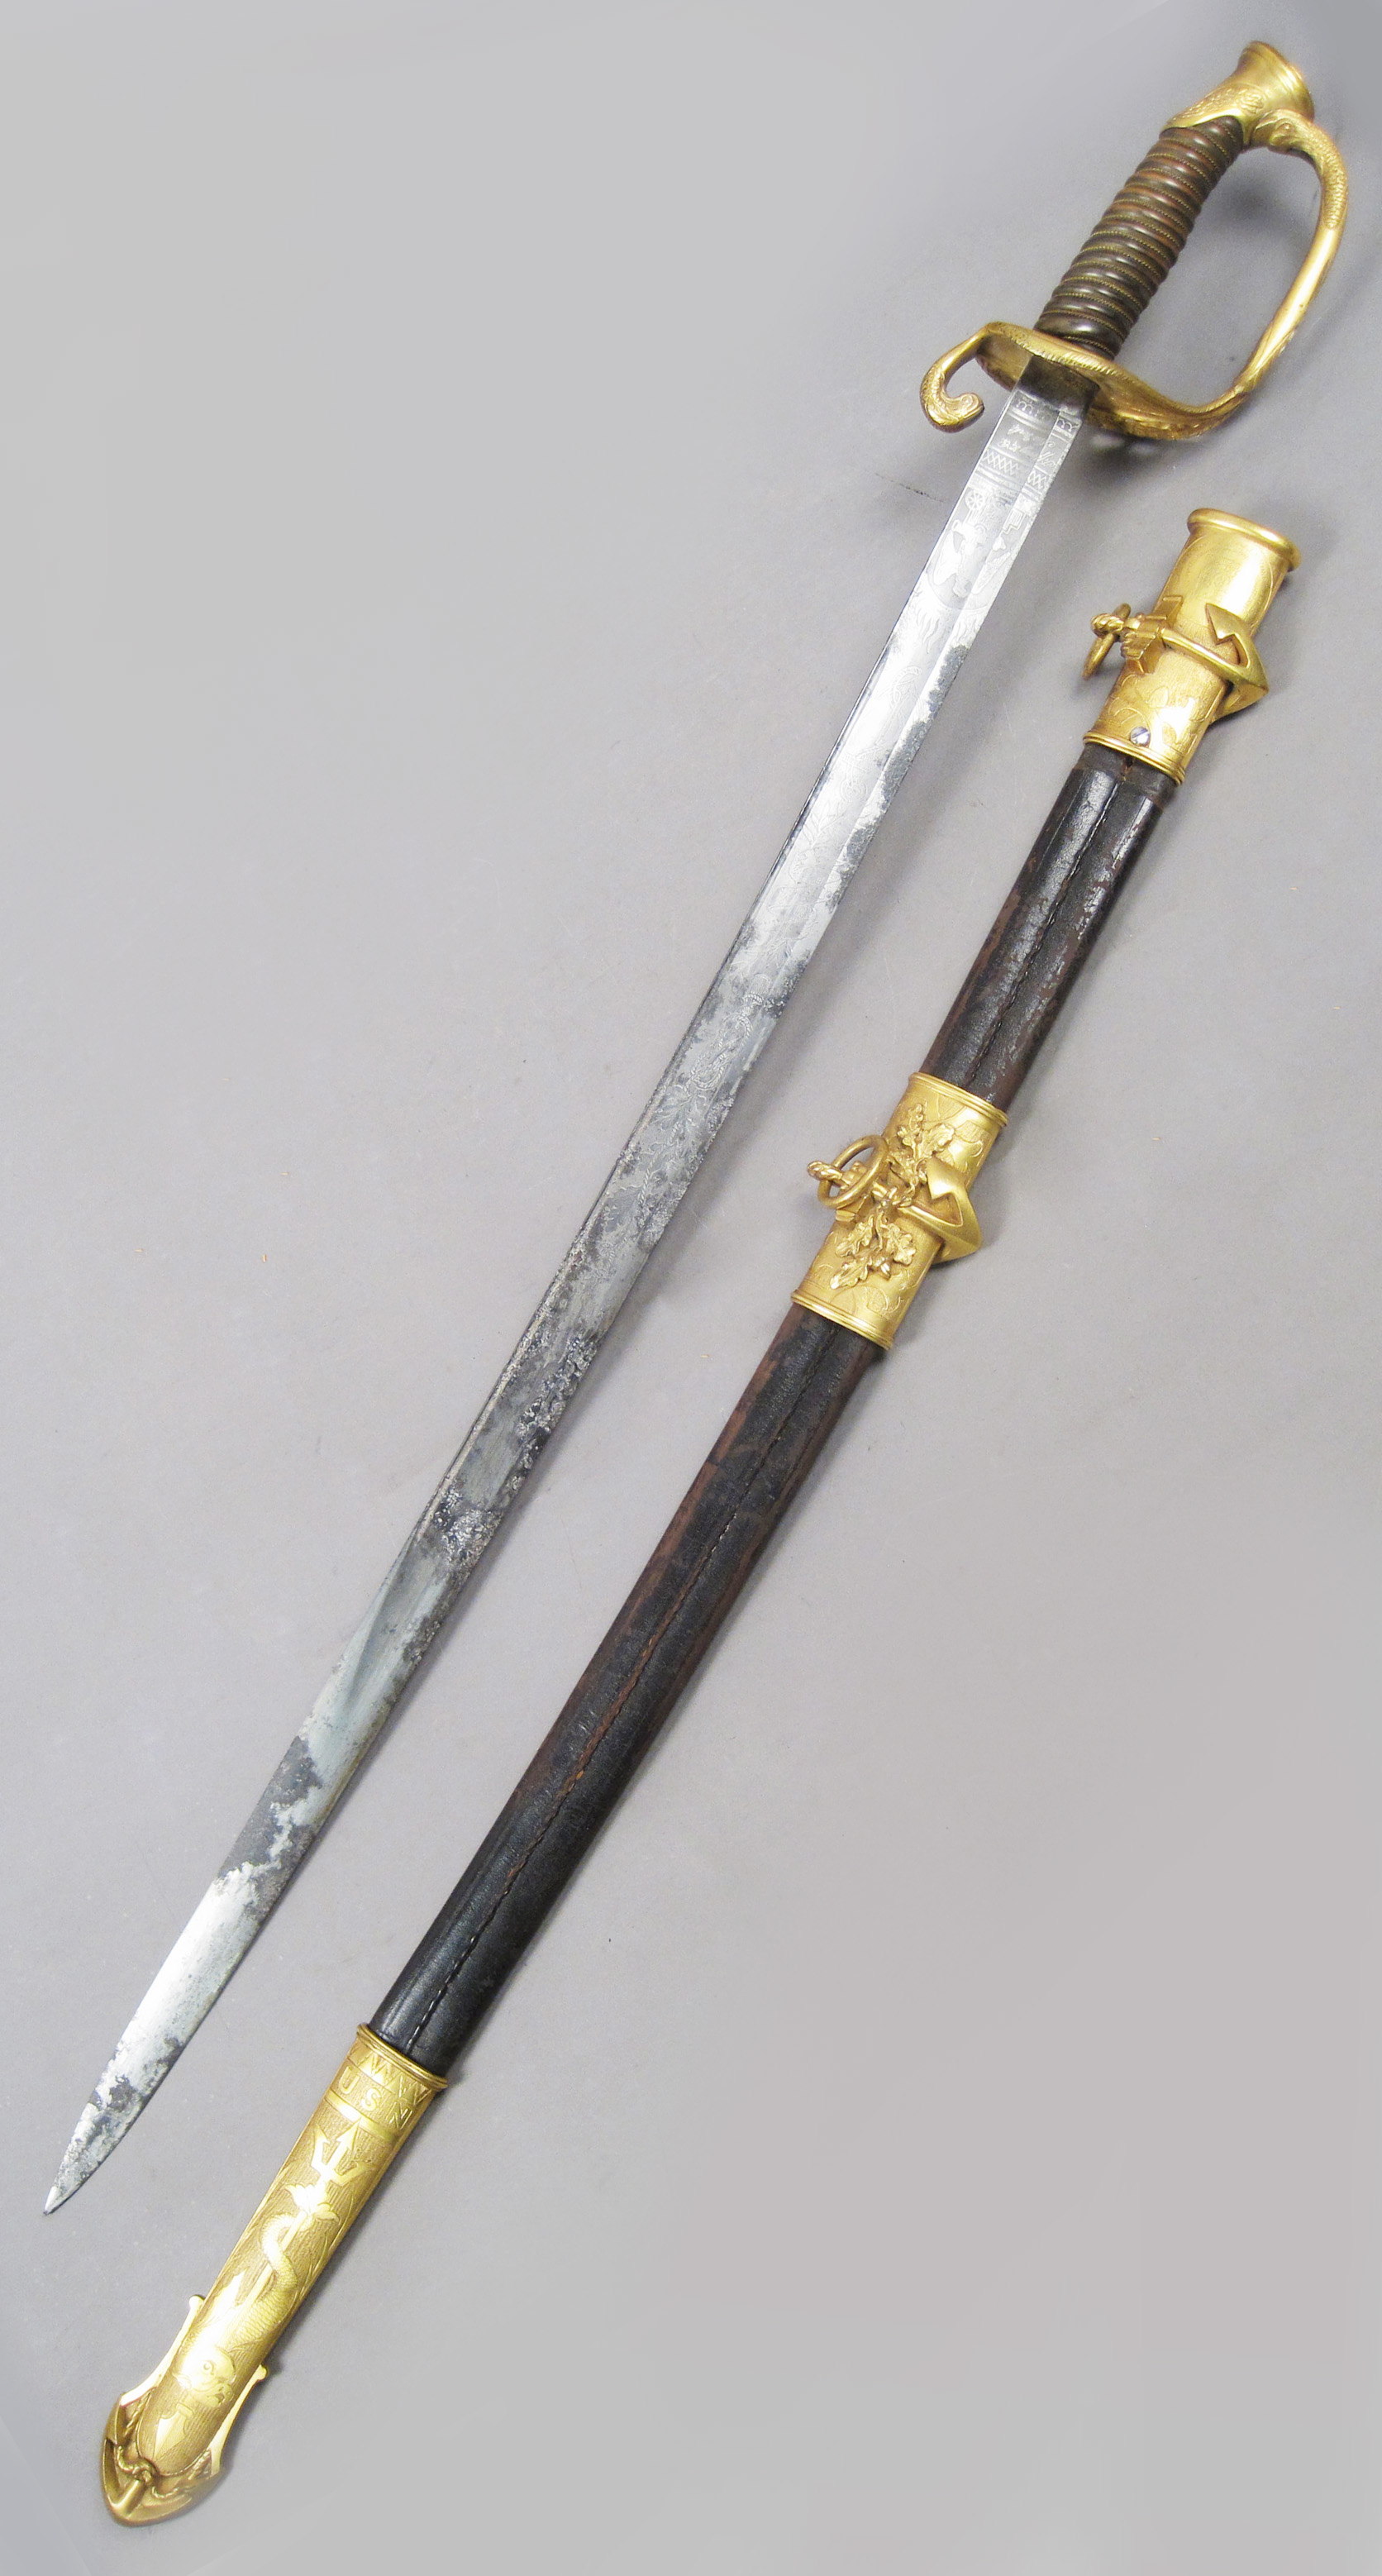 Steel Tiffany Sword with Brass Handle and Scabbard